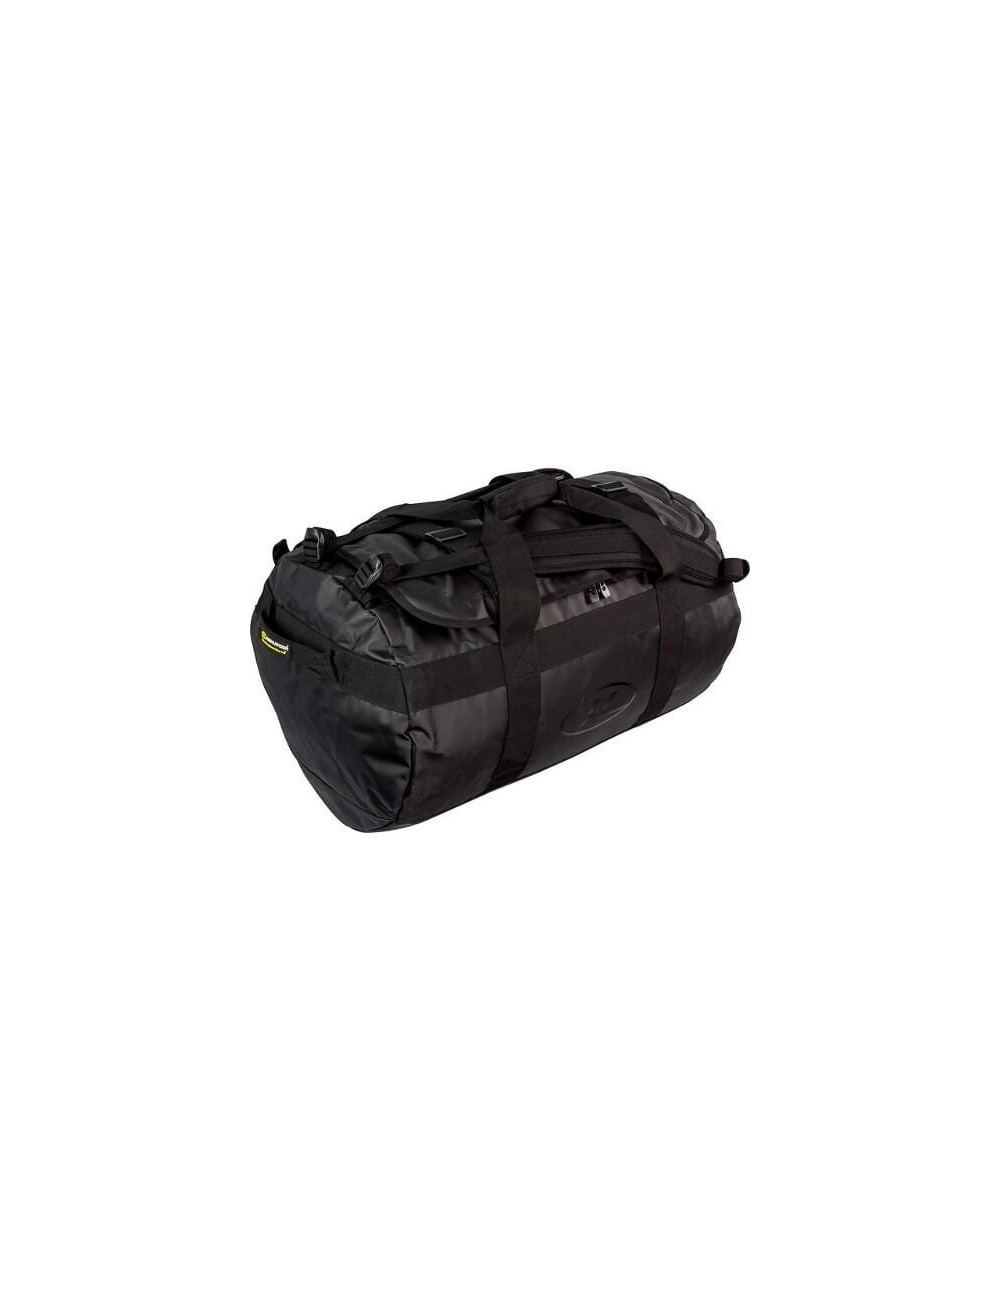 Highlander Lomond Tarpaulins Duffle Bag 65 - Black